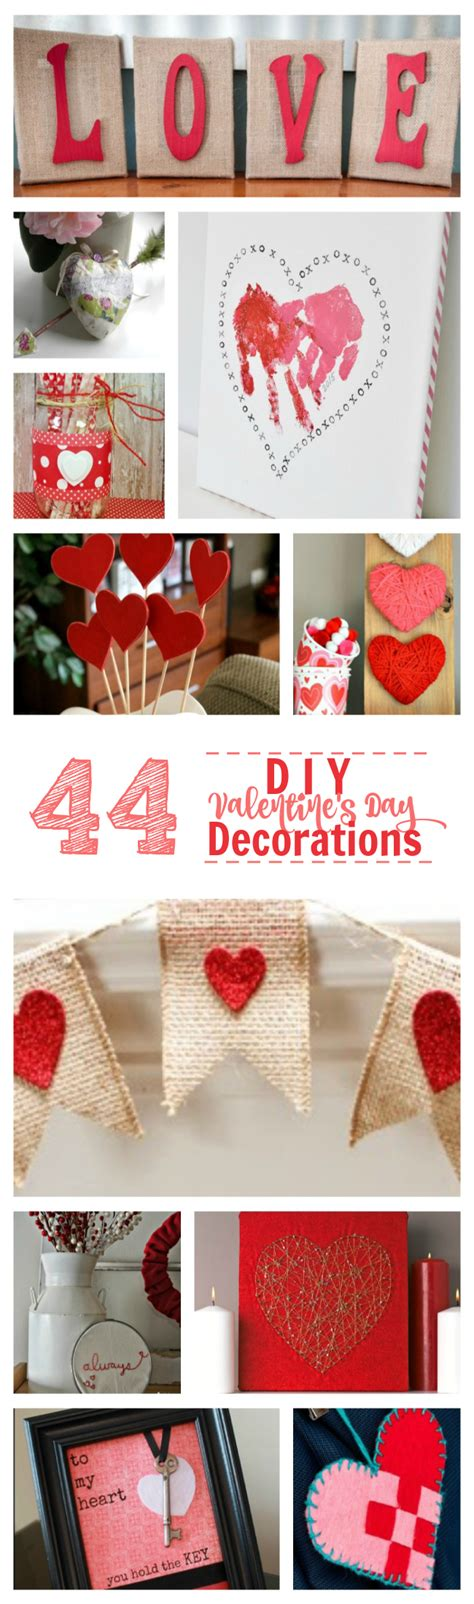 44 diy valentine s day decor projects lifestyle